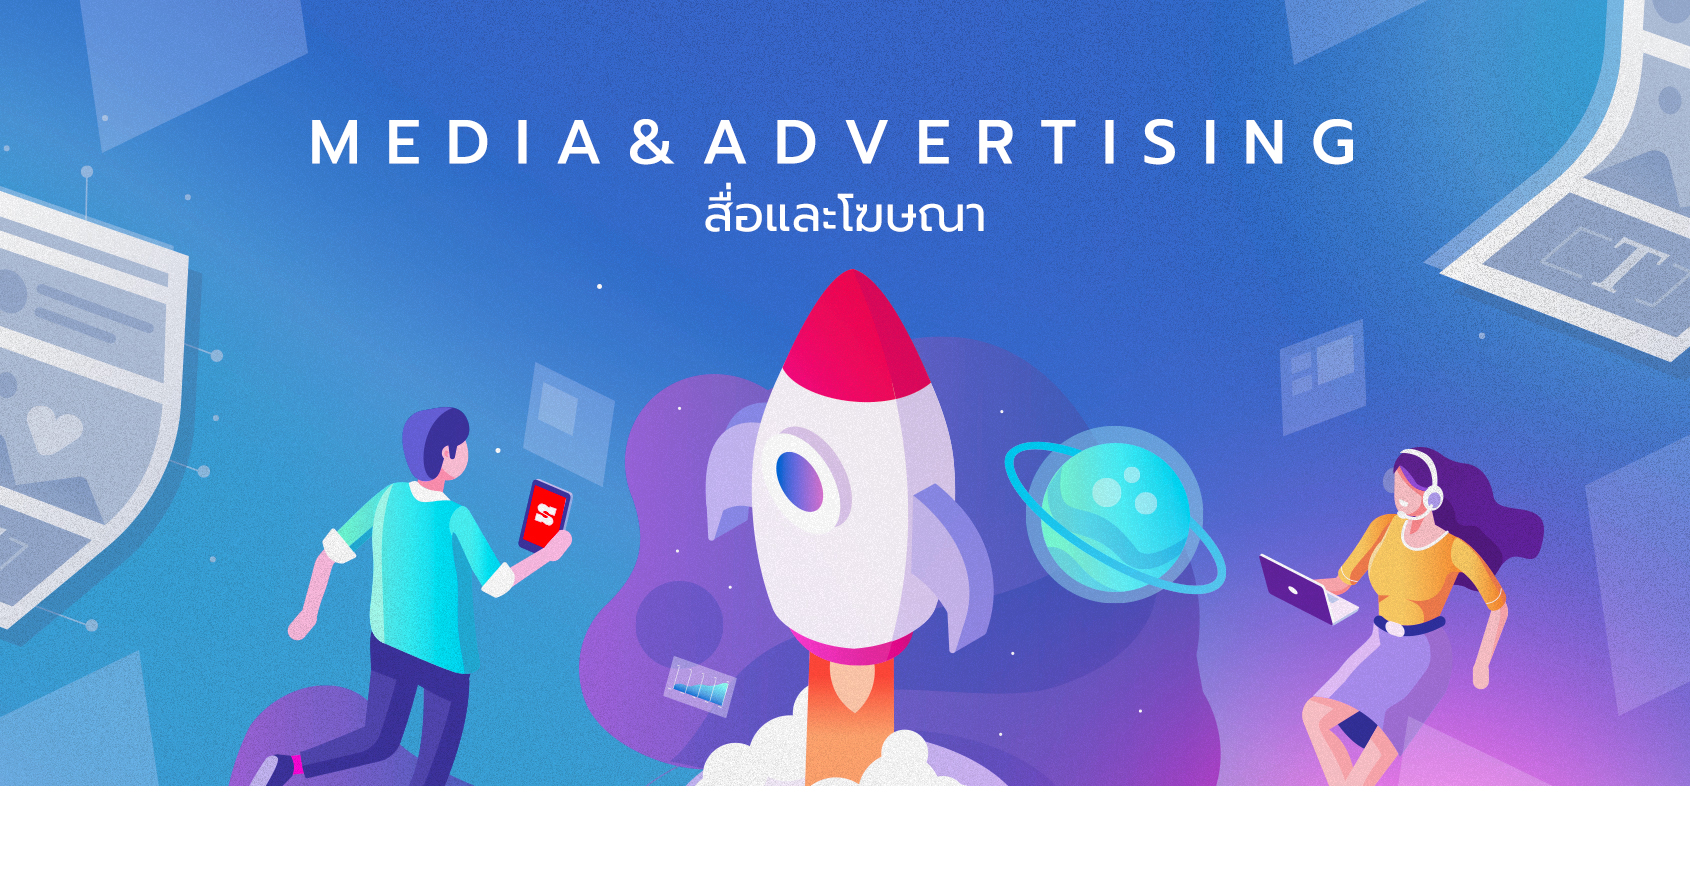 Media & Advertising